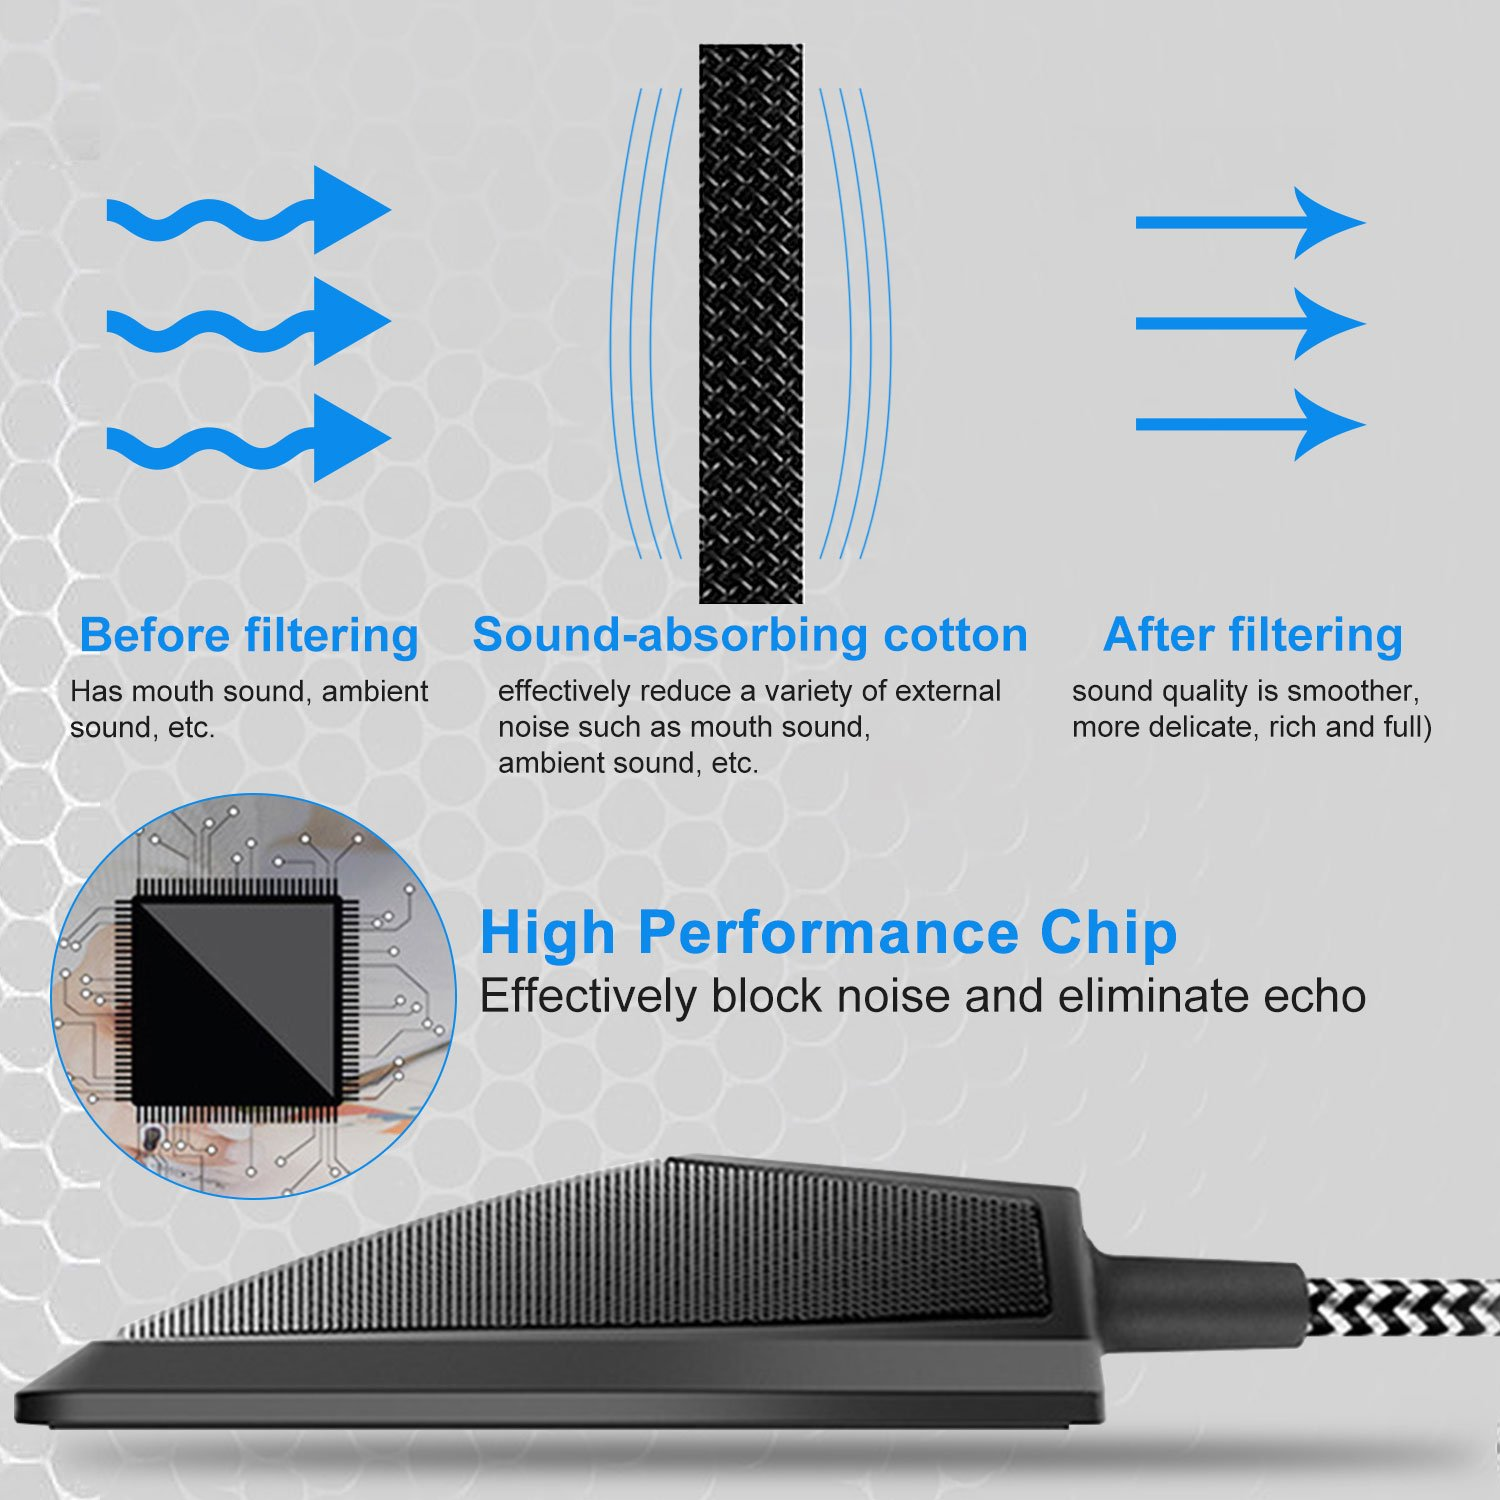 ELUTENG USB Condenser Microphone 360 ° Omnidirection Desktop Conference Microphone USB Computer Plug & Play with Mute Buttom Condenser PC Mic Compatible for Computer MacBook AIR/iMac / iMac Pro by ELUTENG (Image #6)